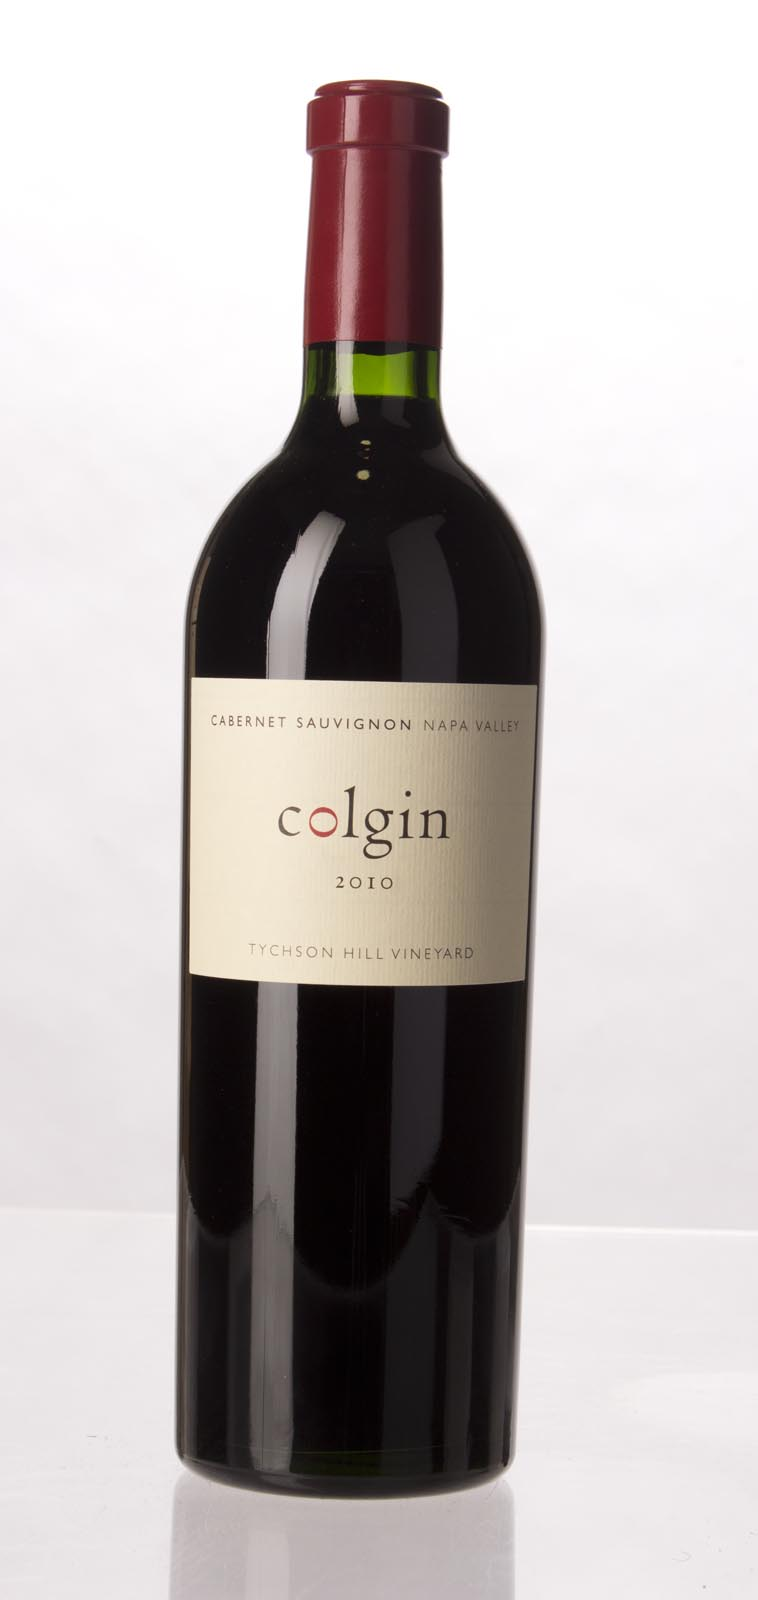 Colgin Cabernet Sauvignon Tychson Hill Vineyard 2010, 750mL (WA96, VN97, JS98) from The BPW - Merchants of rare and fine wines.